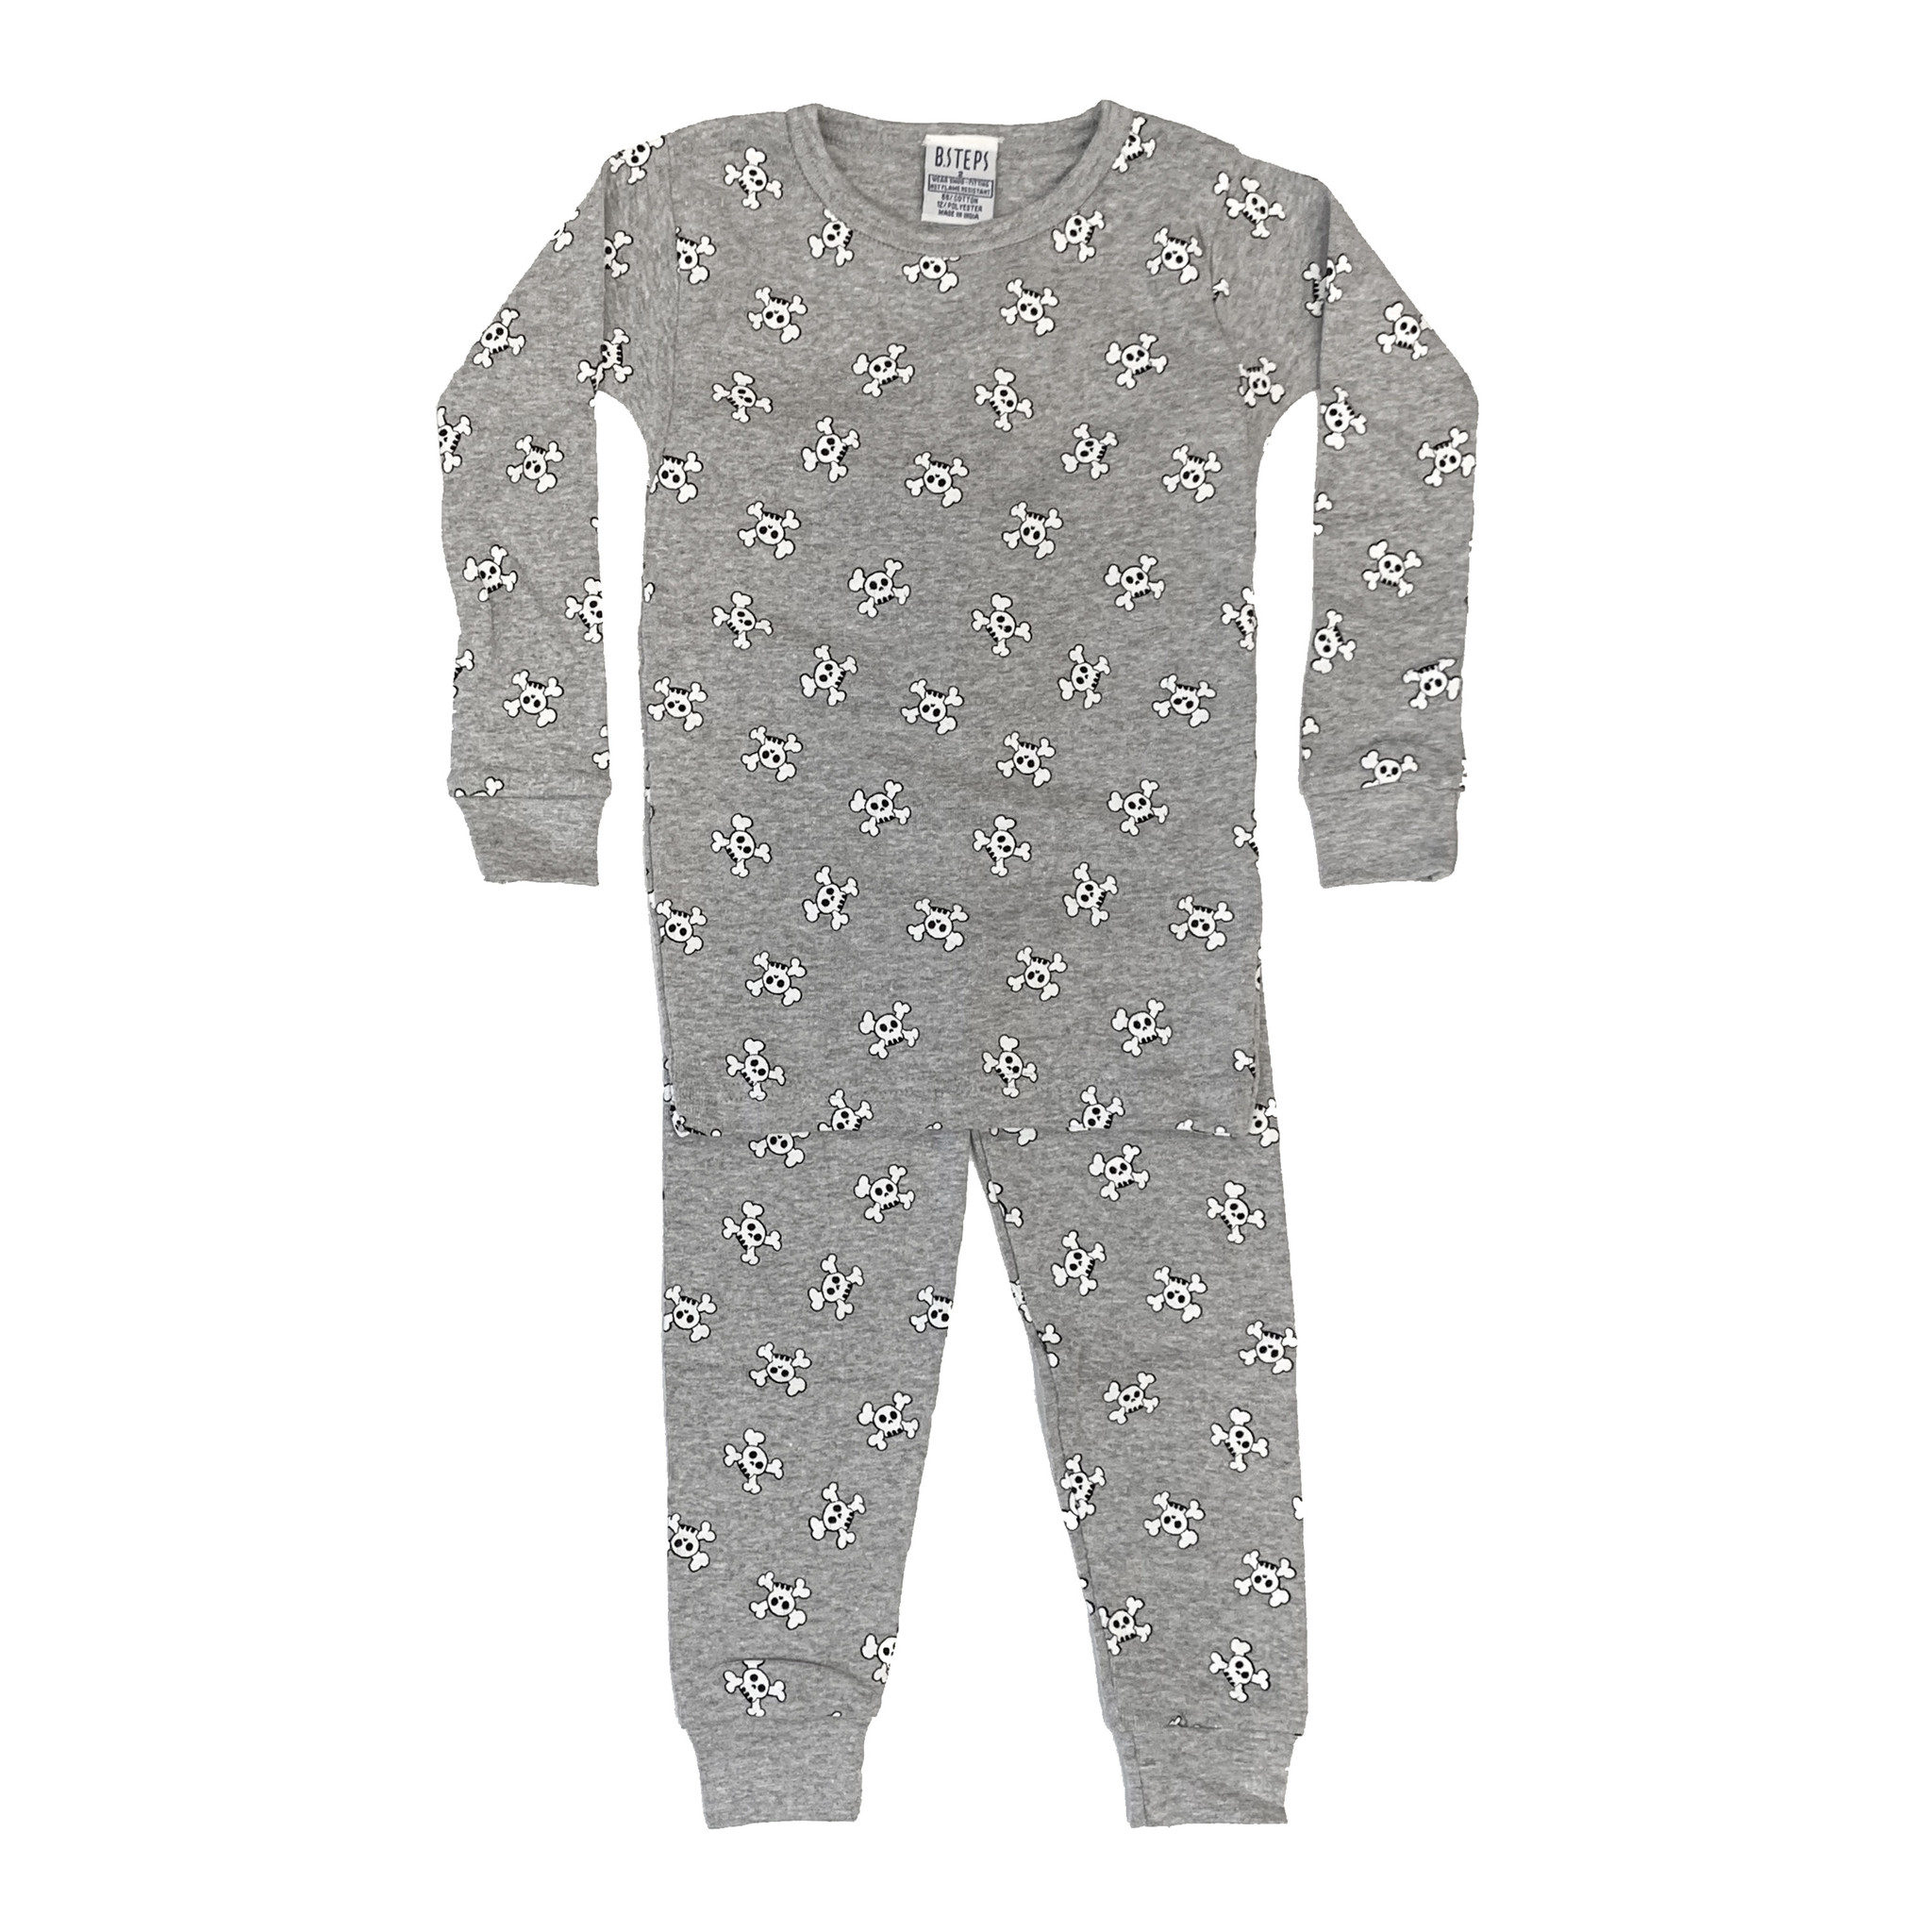 Baby Steps Grey Skulls Infant PJ Set